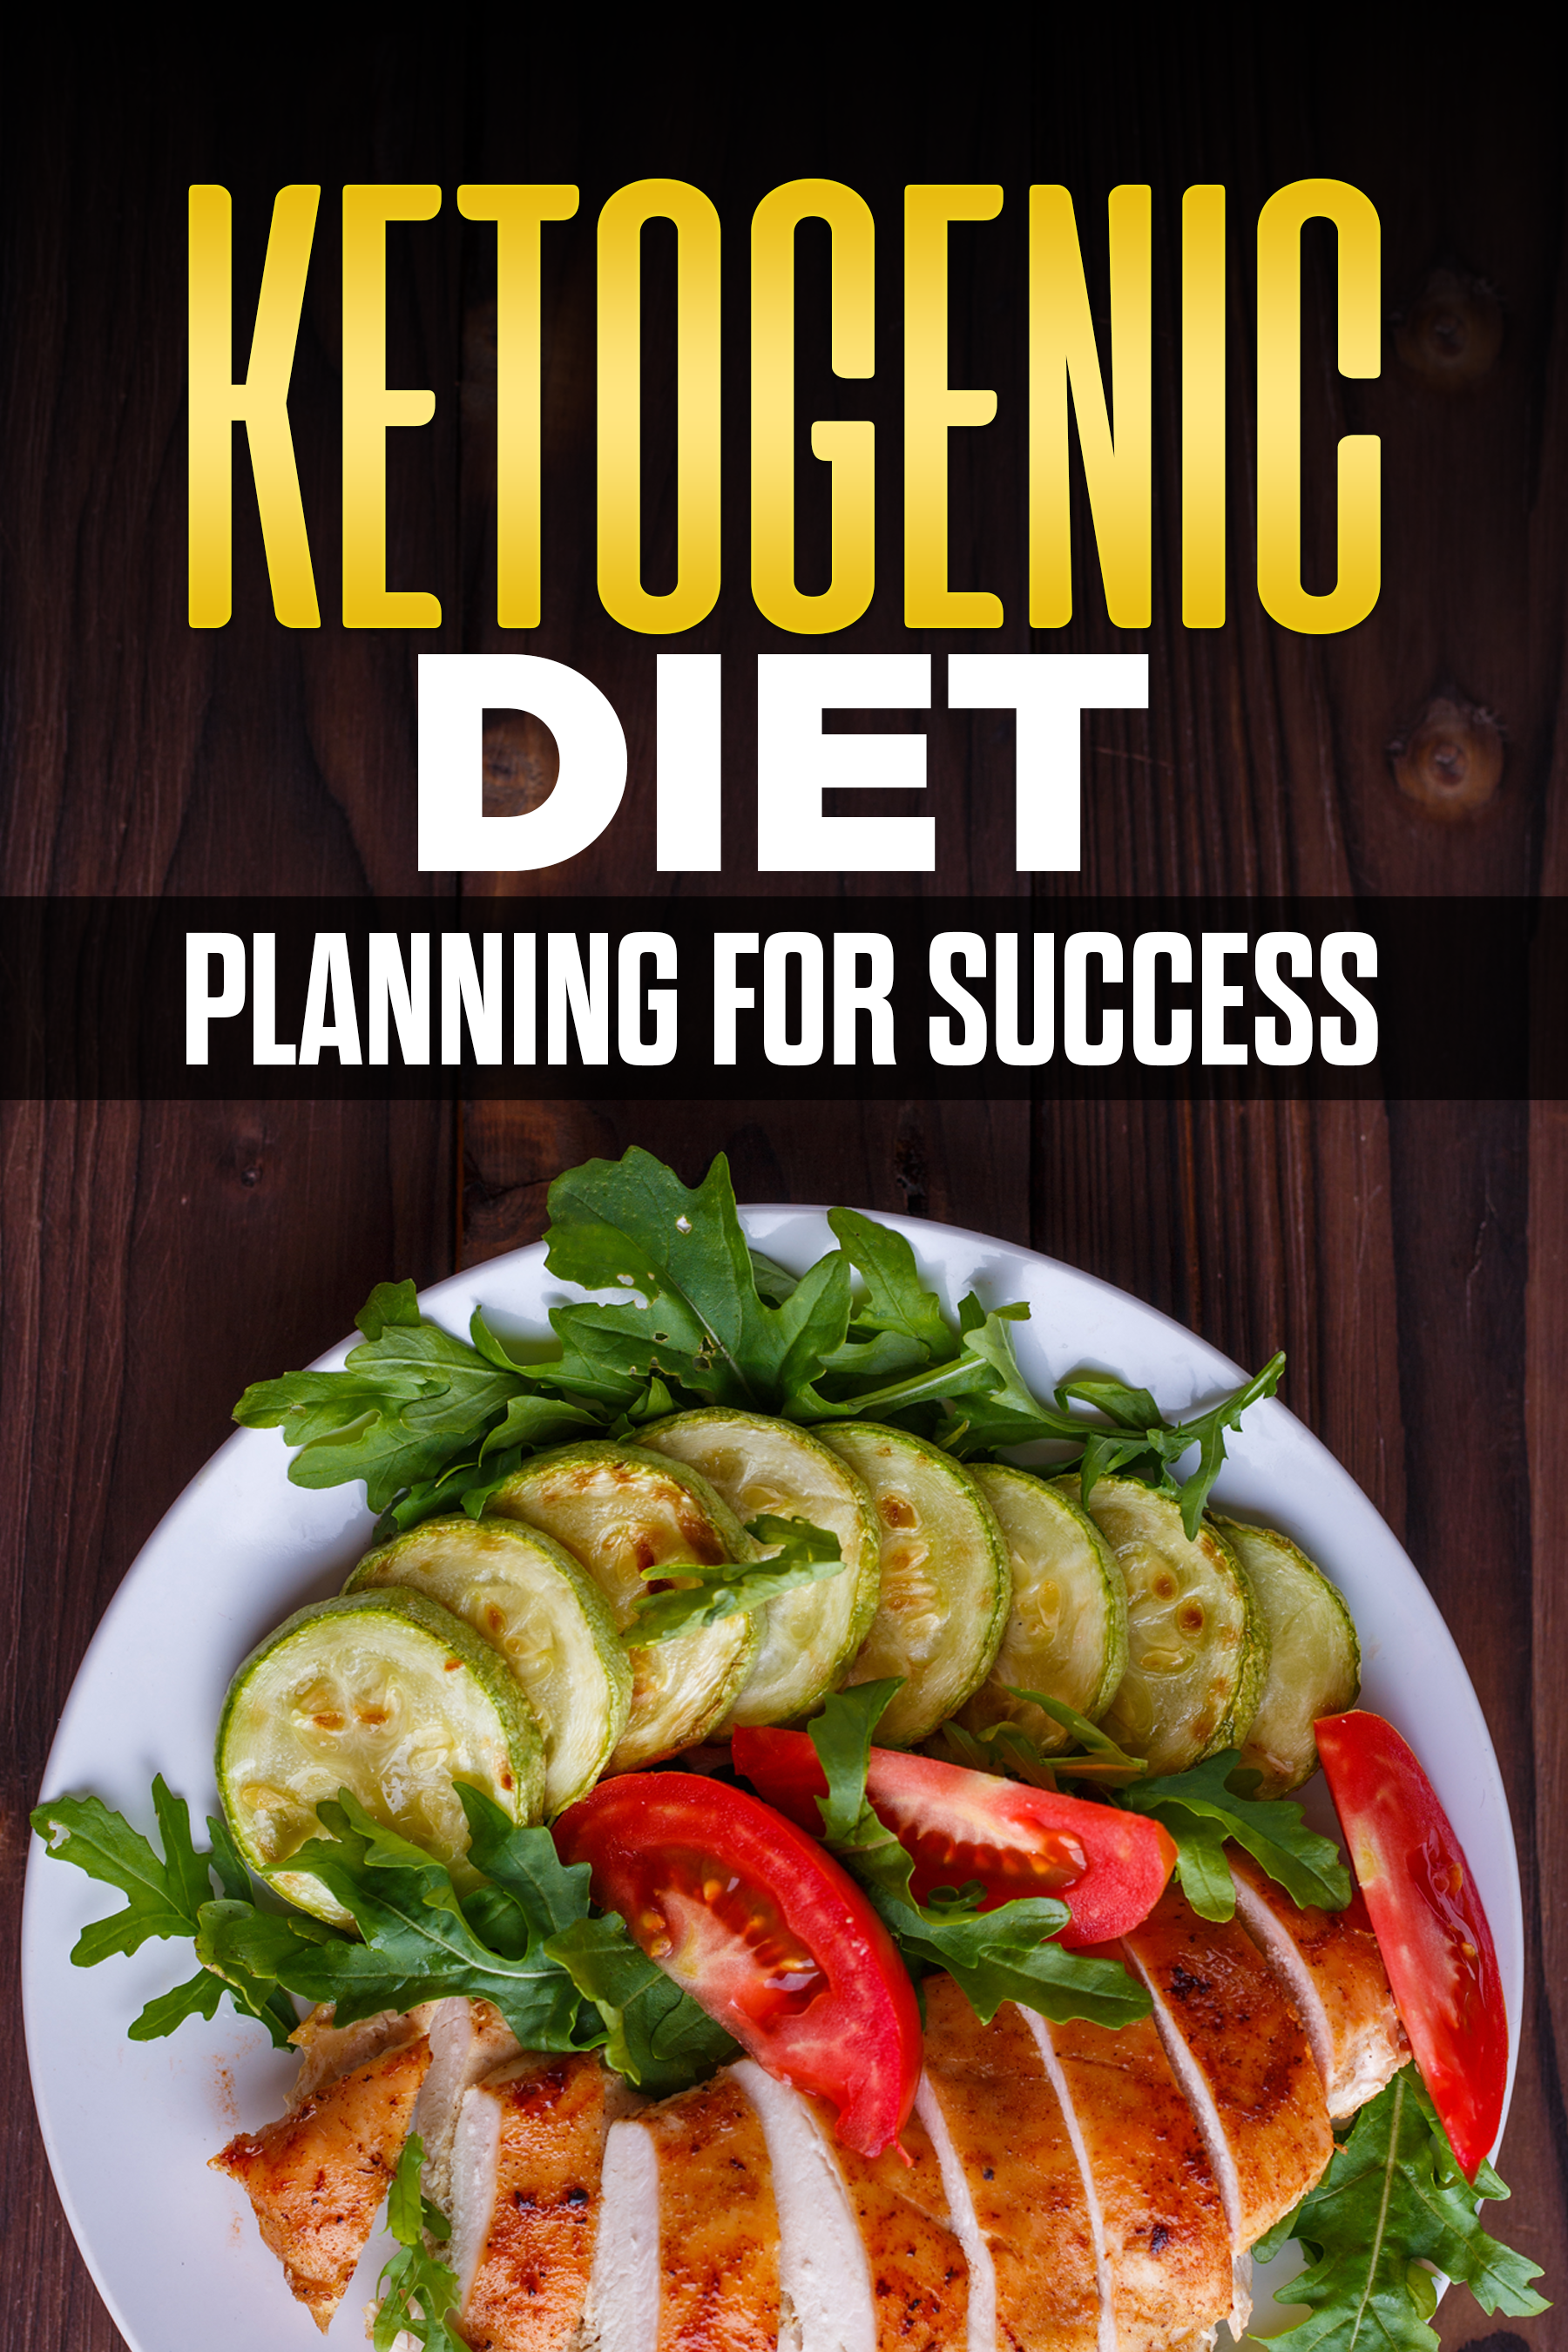 Ketogenic Diet - Planning For Success